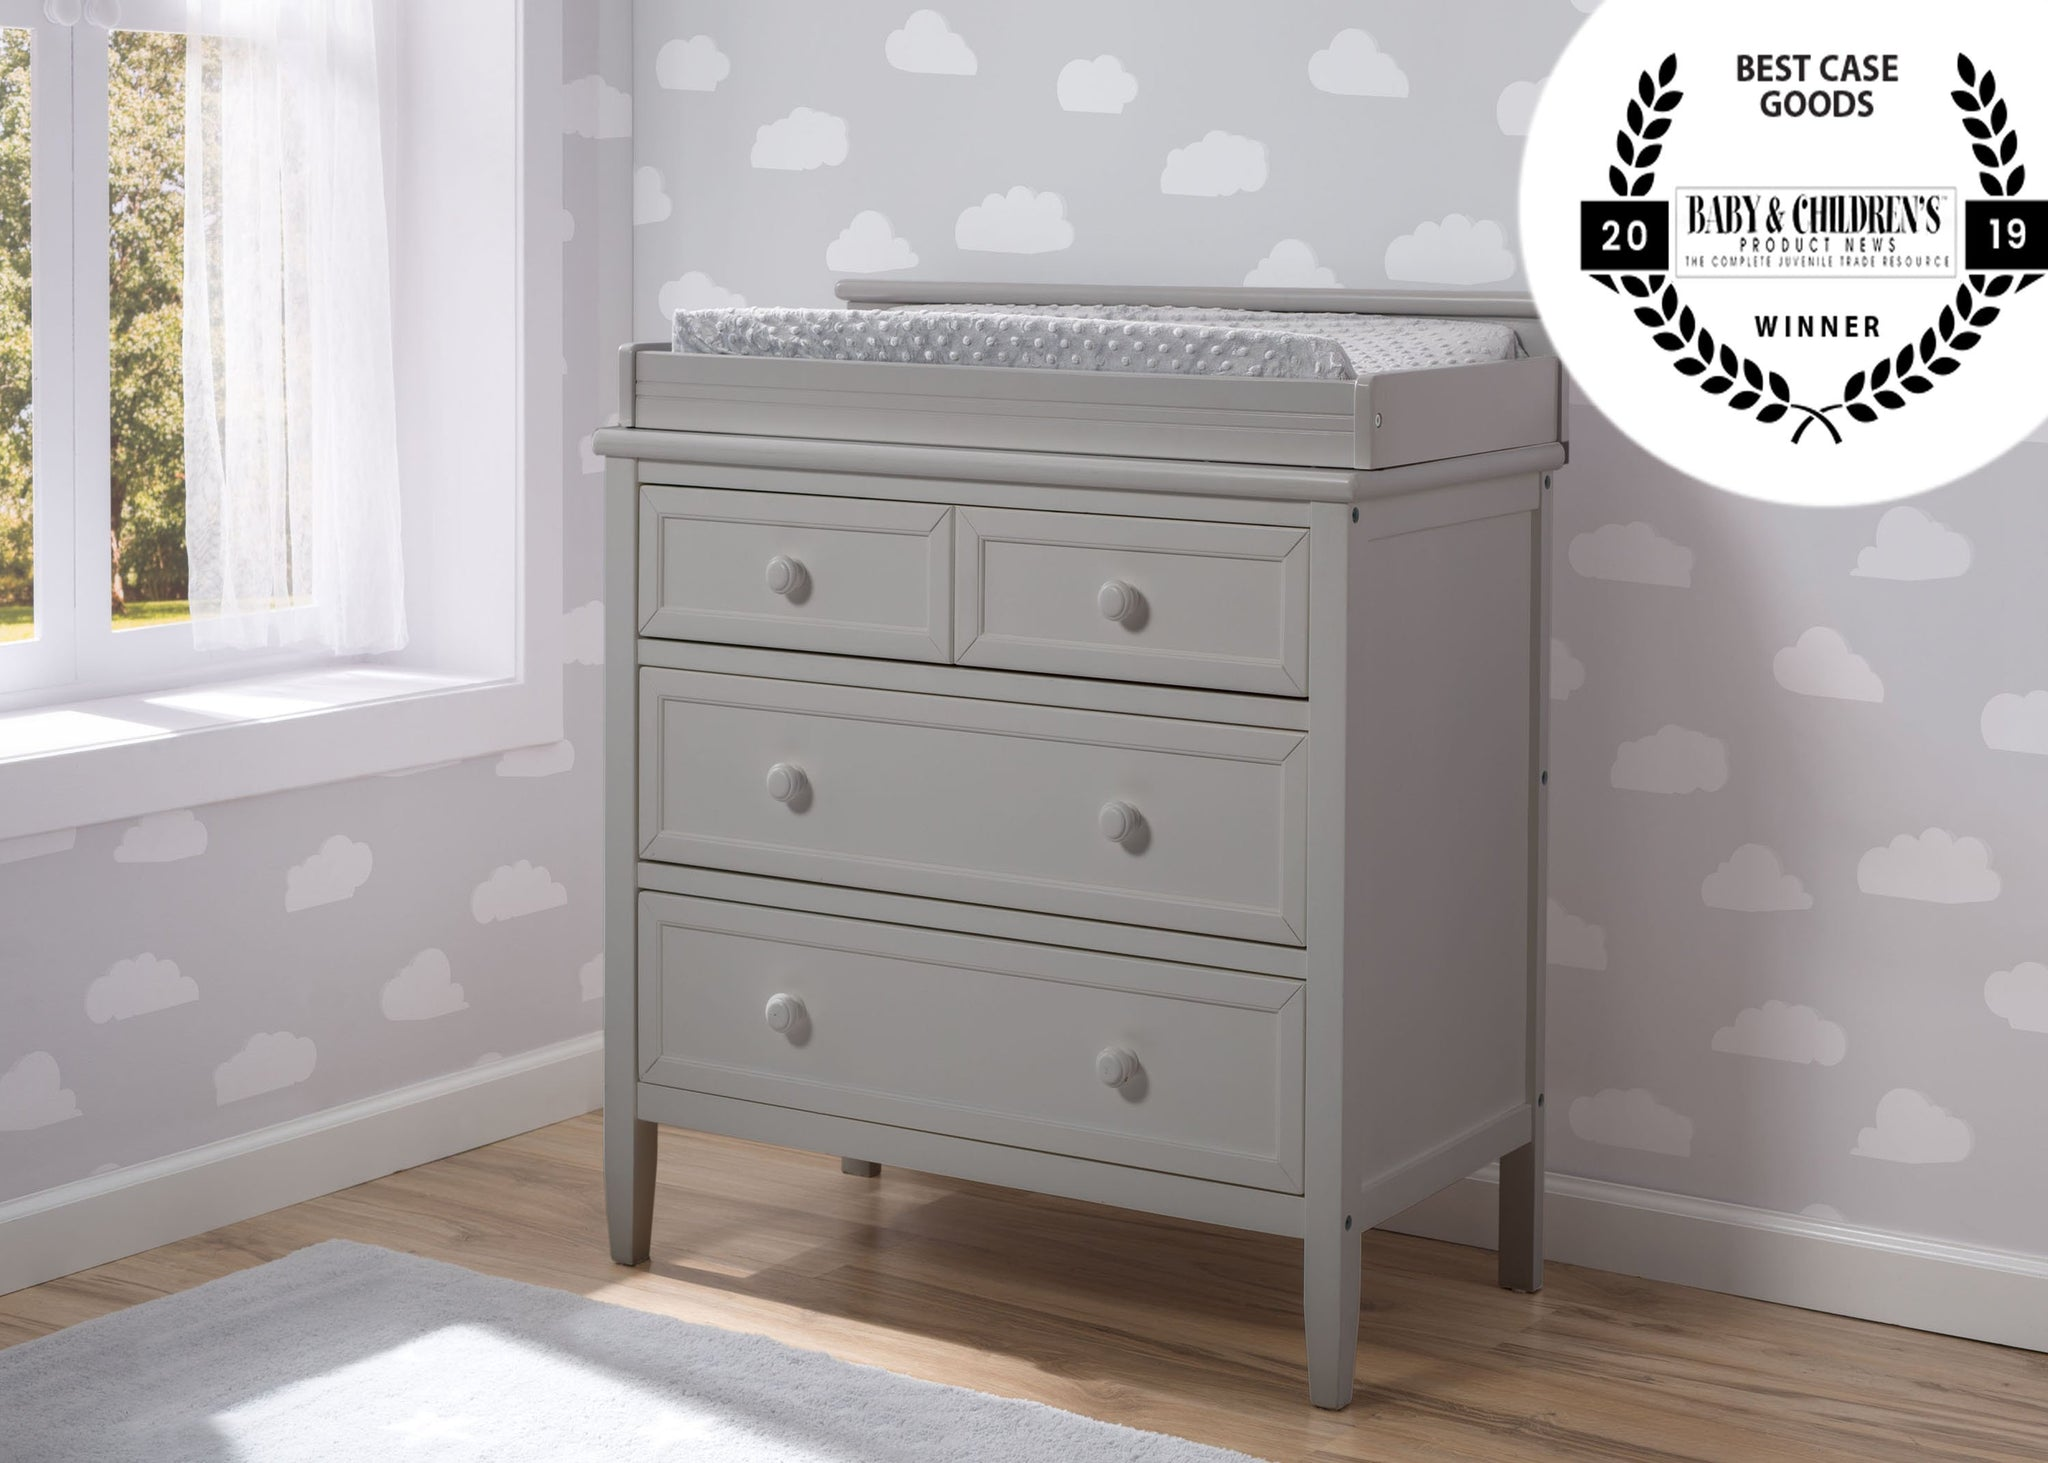 Delta Children Epic Signature 3 Drawer Dresser with Changing Top, Right View Grey (026) a0a